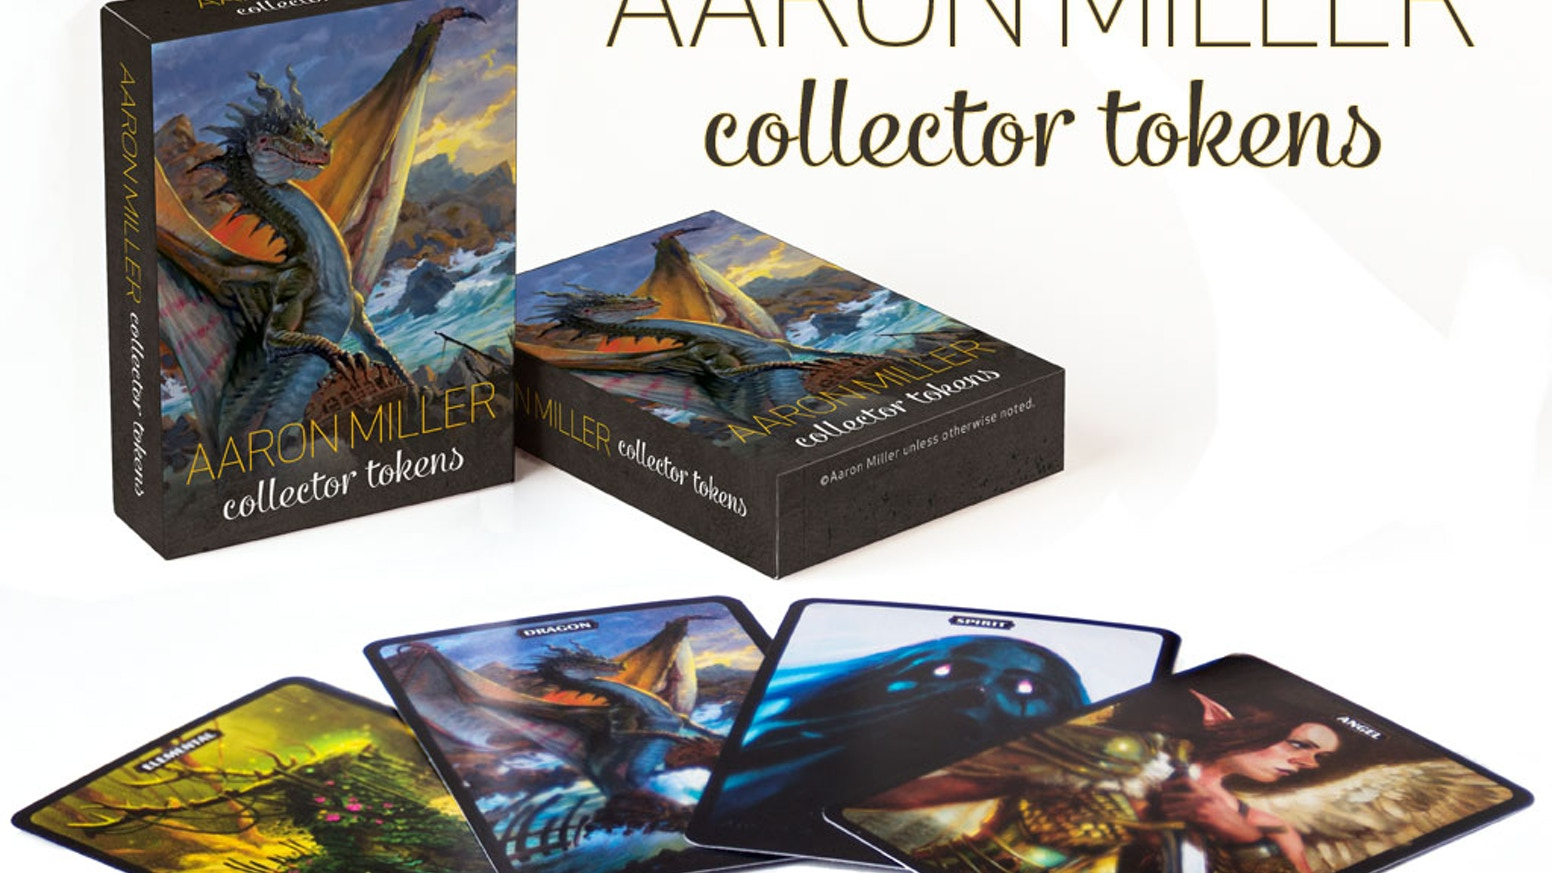 Beautiful pack of Collector Tokens featuring the art of MtG artist Aaron Miller. Over 50 tokens and other goodies.